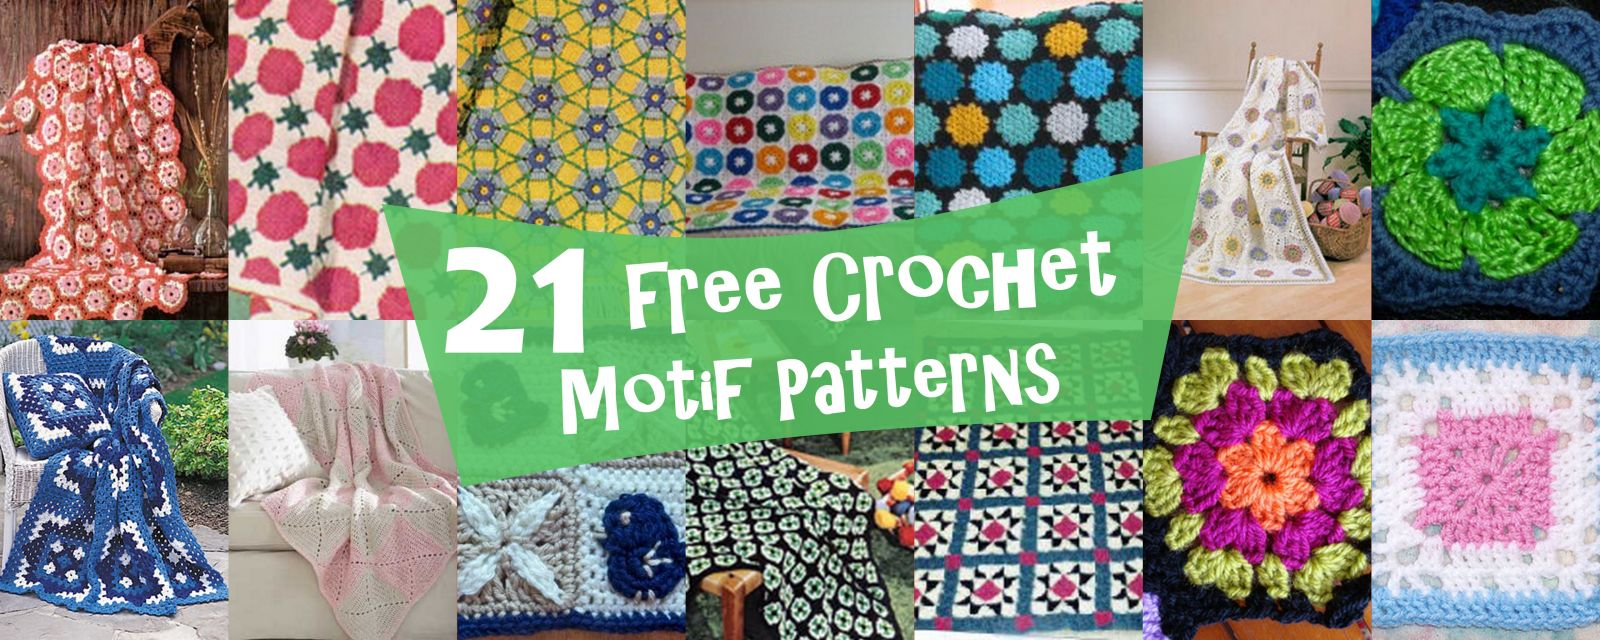 21 Free Crochet Motif Patterns | AllFreeCrochetAfghanPatterns.com